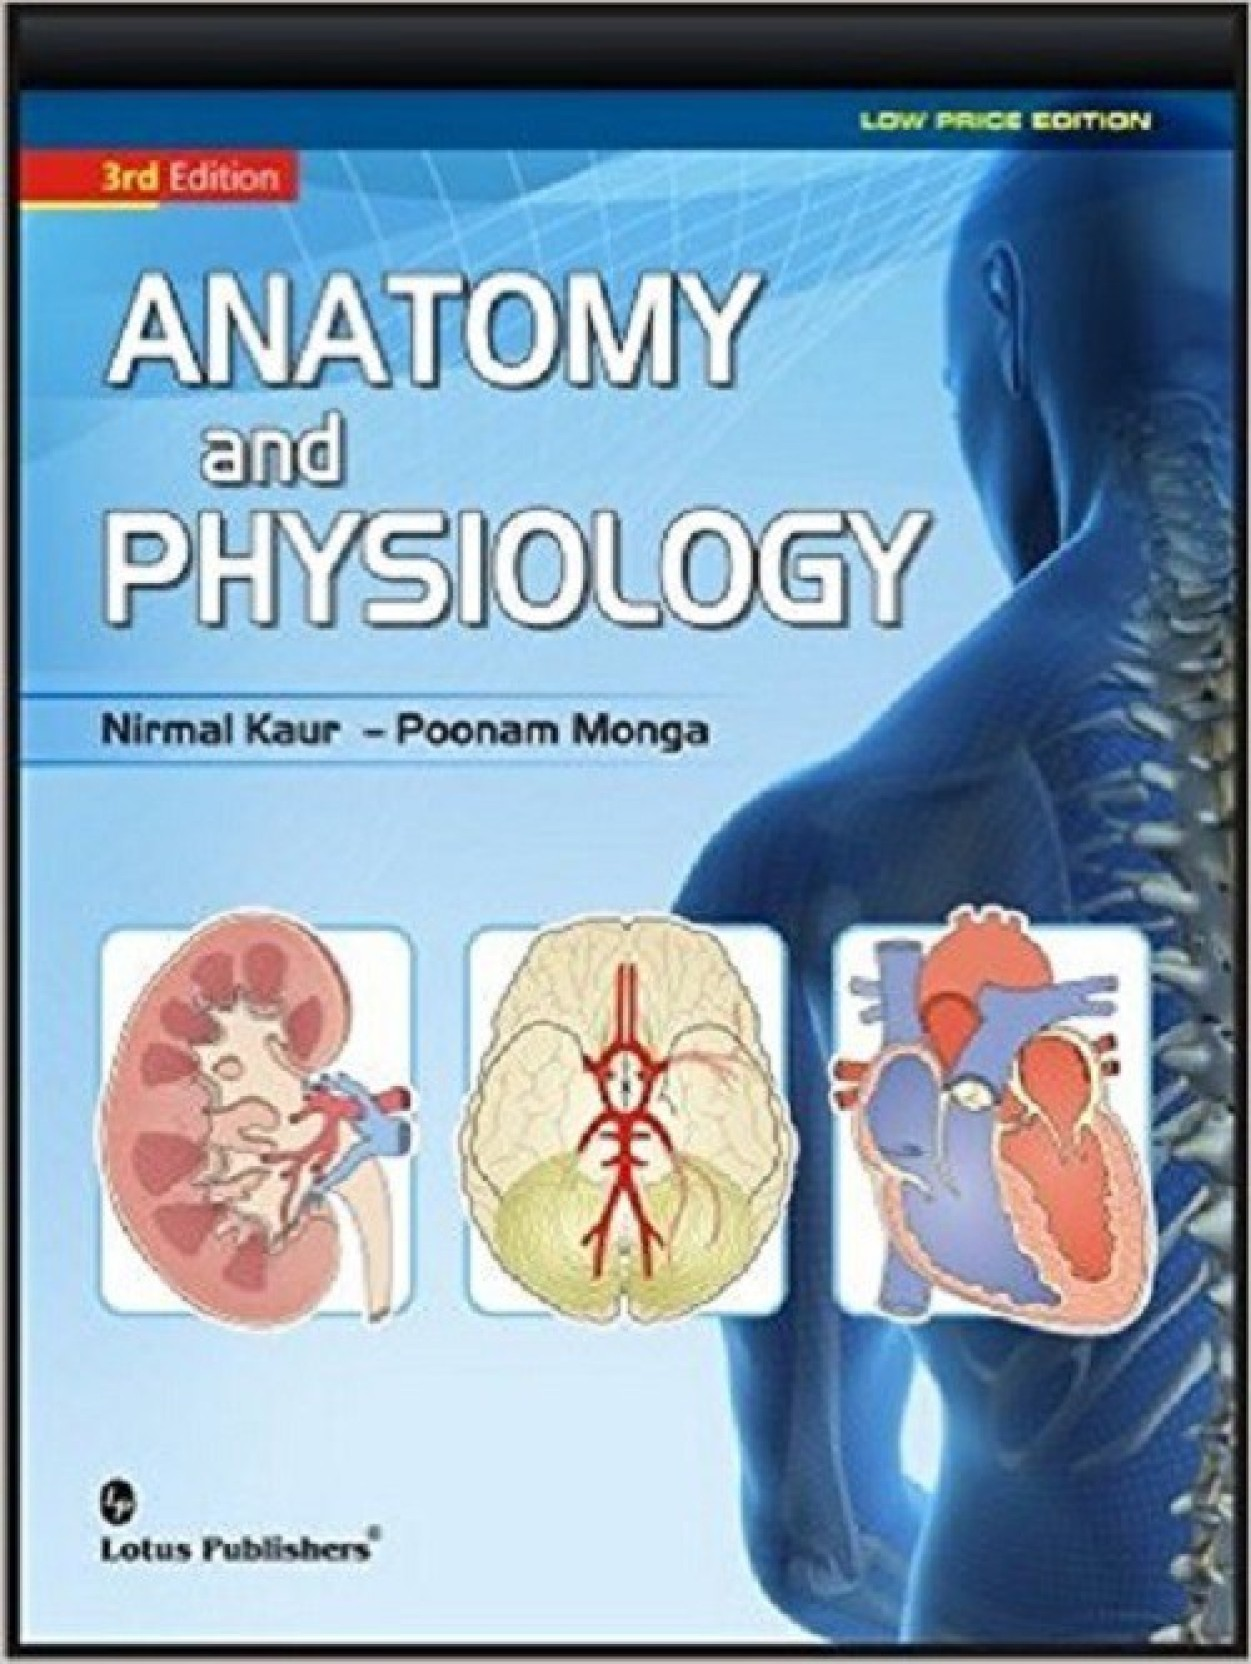 Anatomy & Physiology (B/W): Buy Anatomy & Physiology (B/W) by Nirmal ...